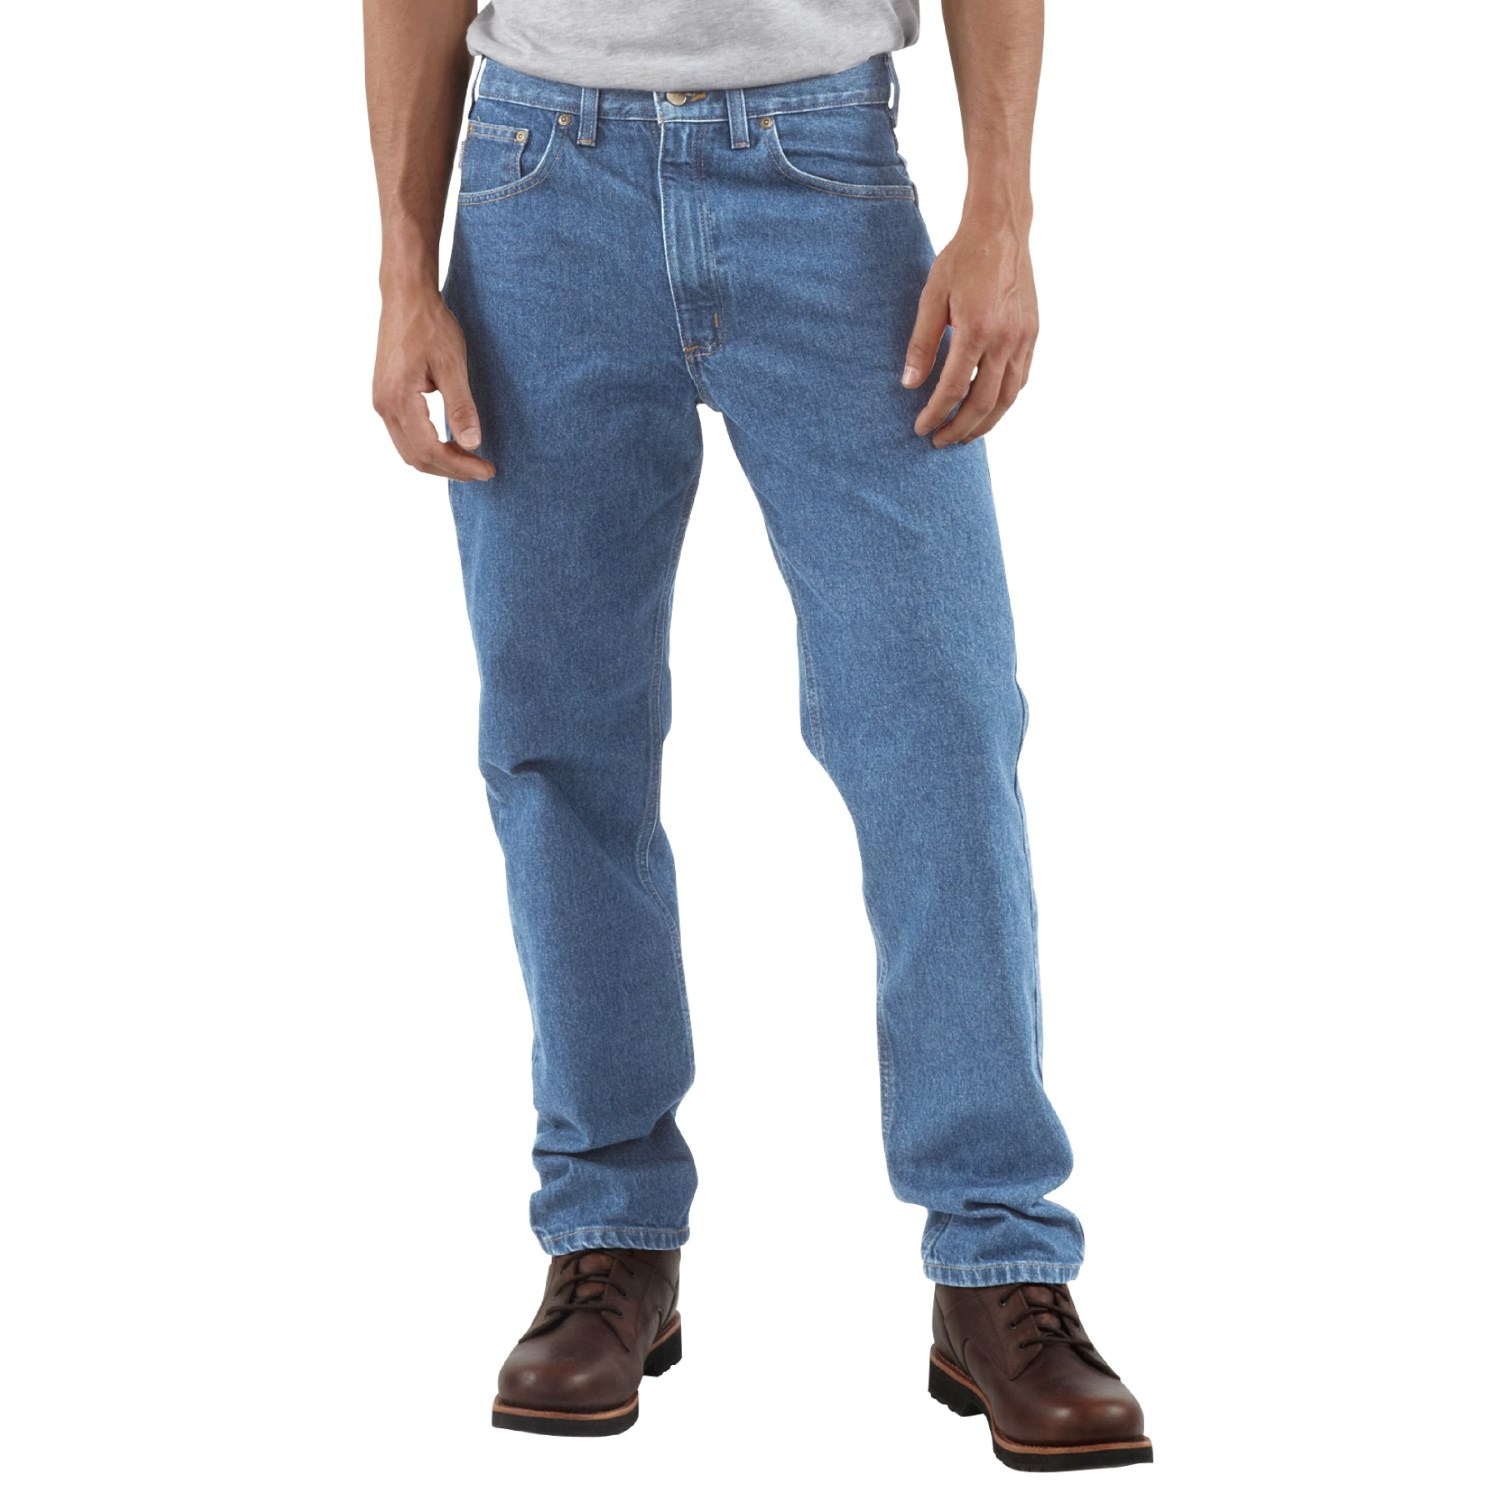 Carhartt Traditional Fit Work Jeans For Men